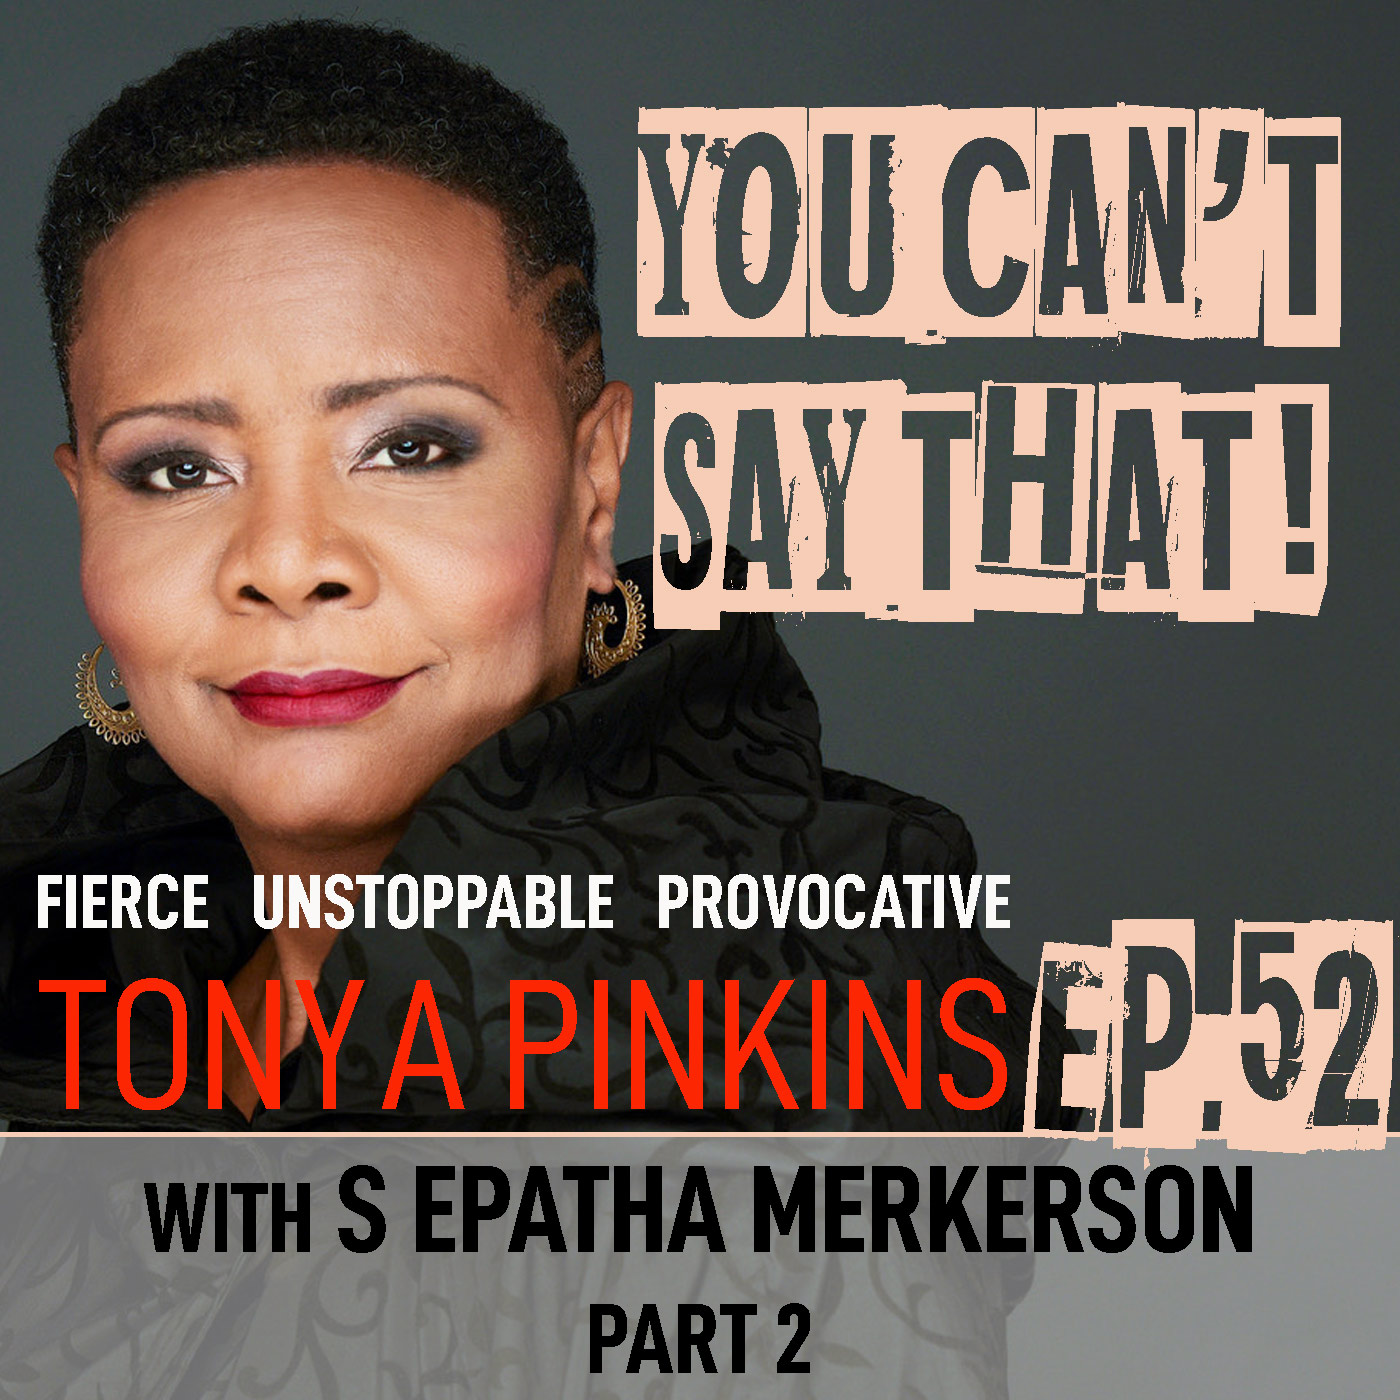 You Can't Say That Ep52 - S Epatha Merkerson (Part 2)